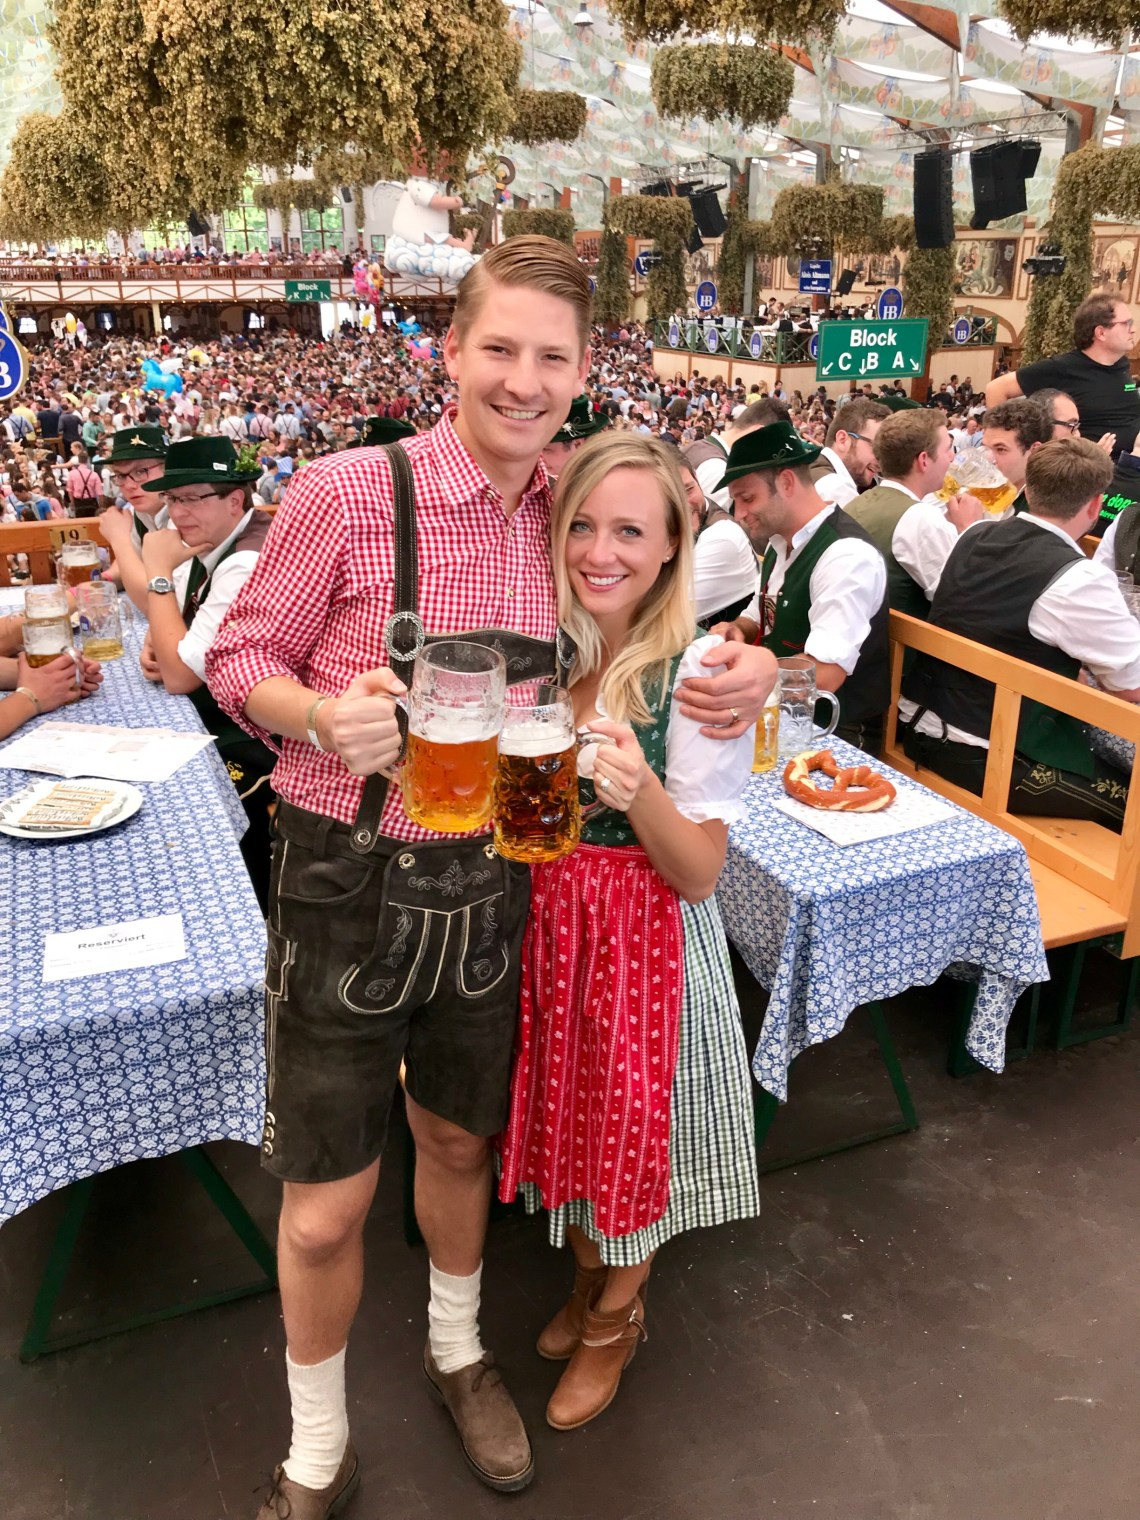 Oktoberfest in Munich, Germany.